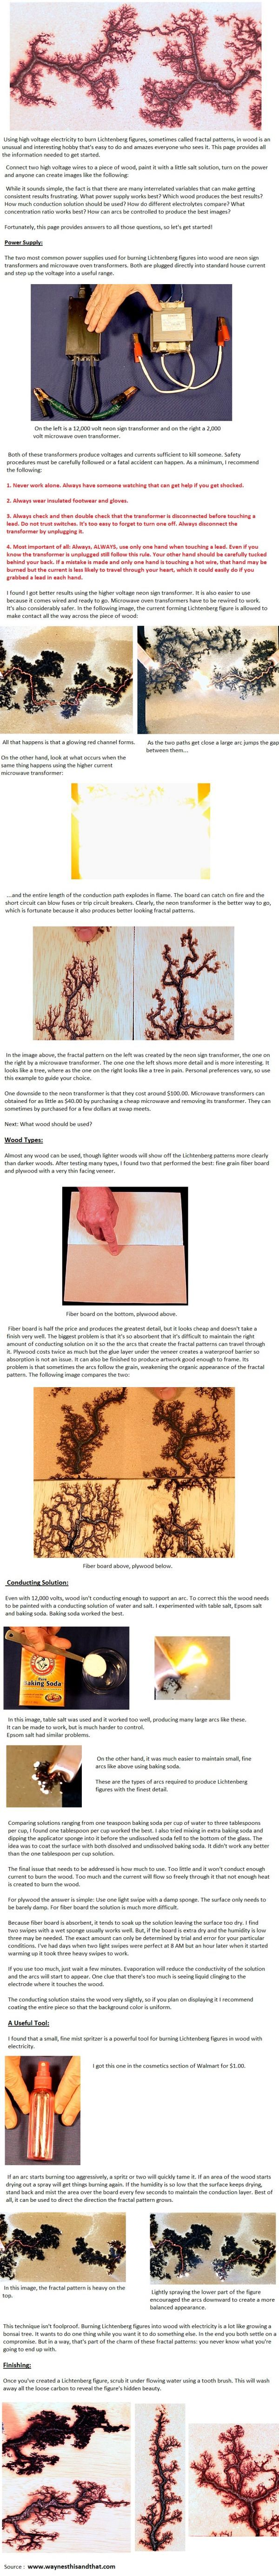 Fractal Lichtenberg Figure Wood Burning With Electricity By waynesthisandthat.com